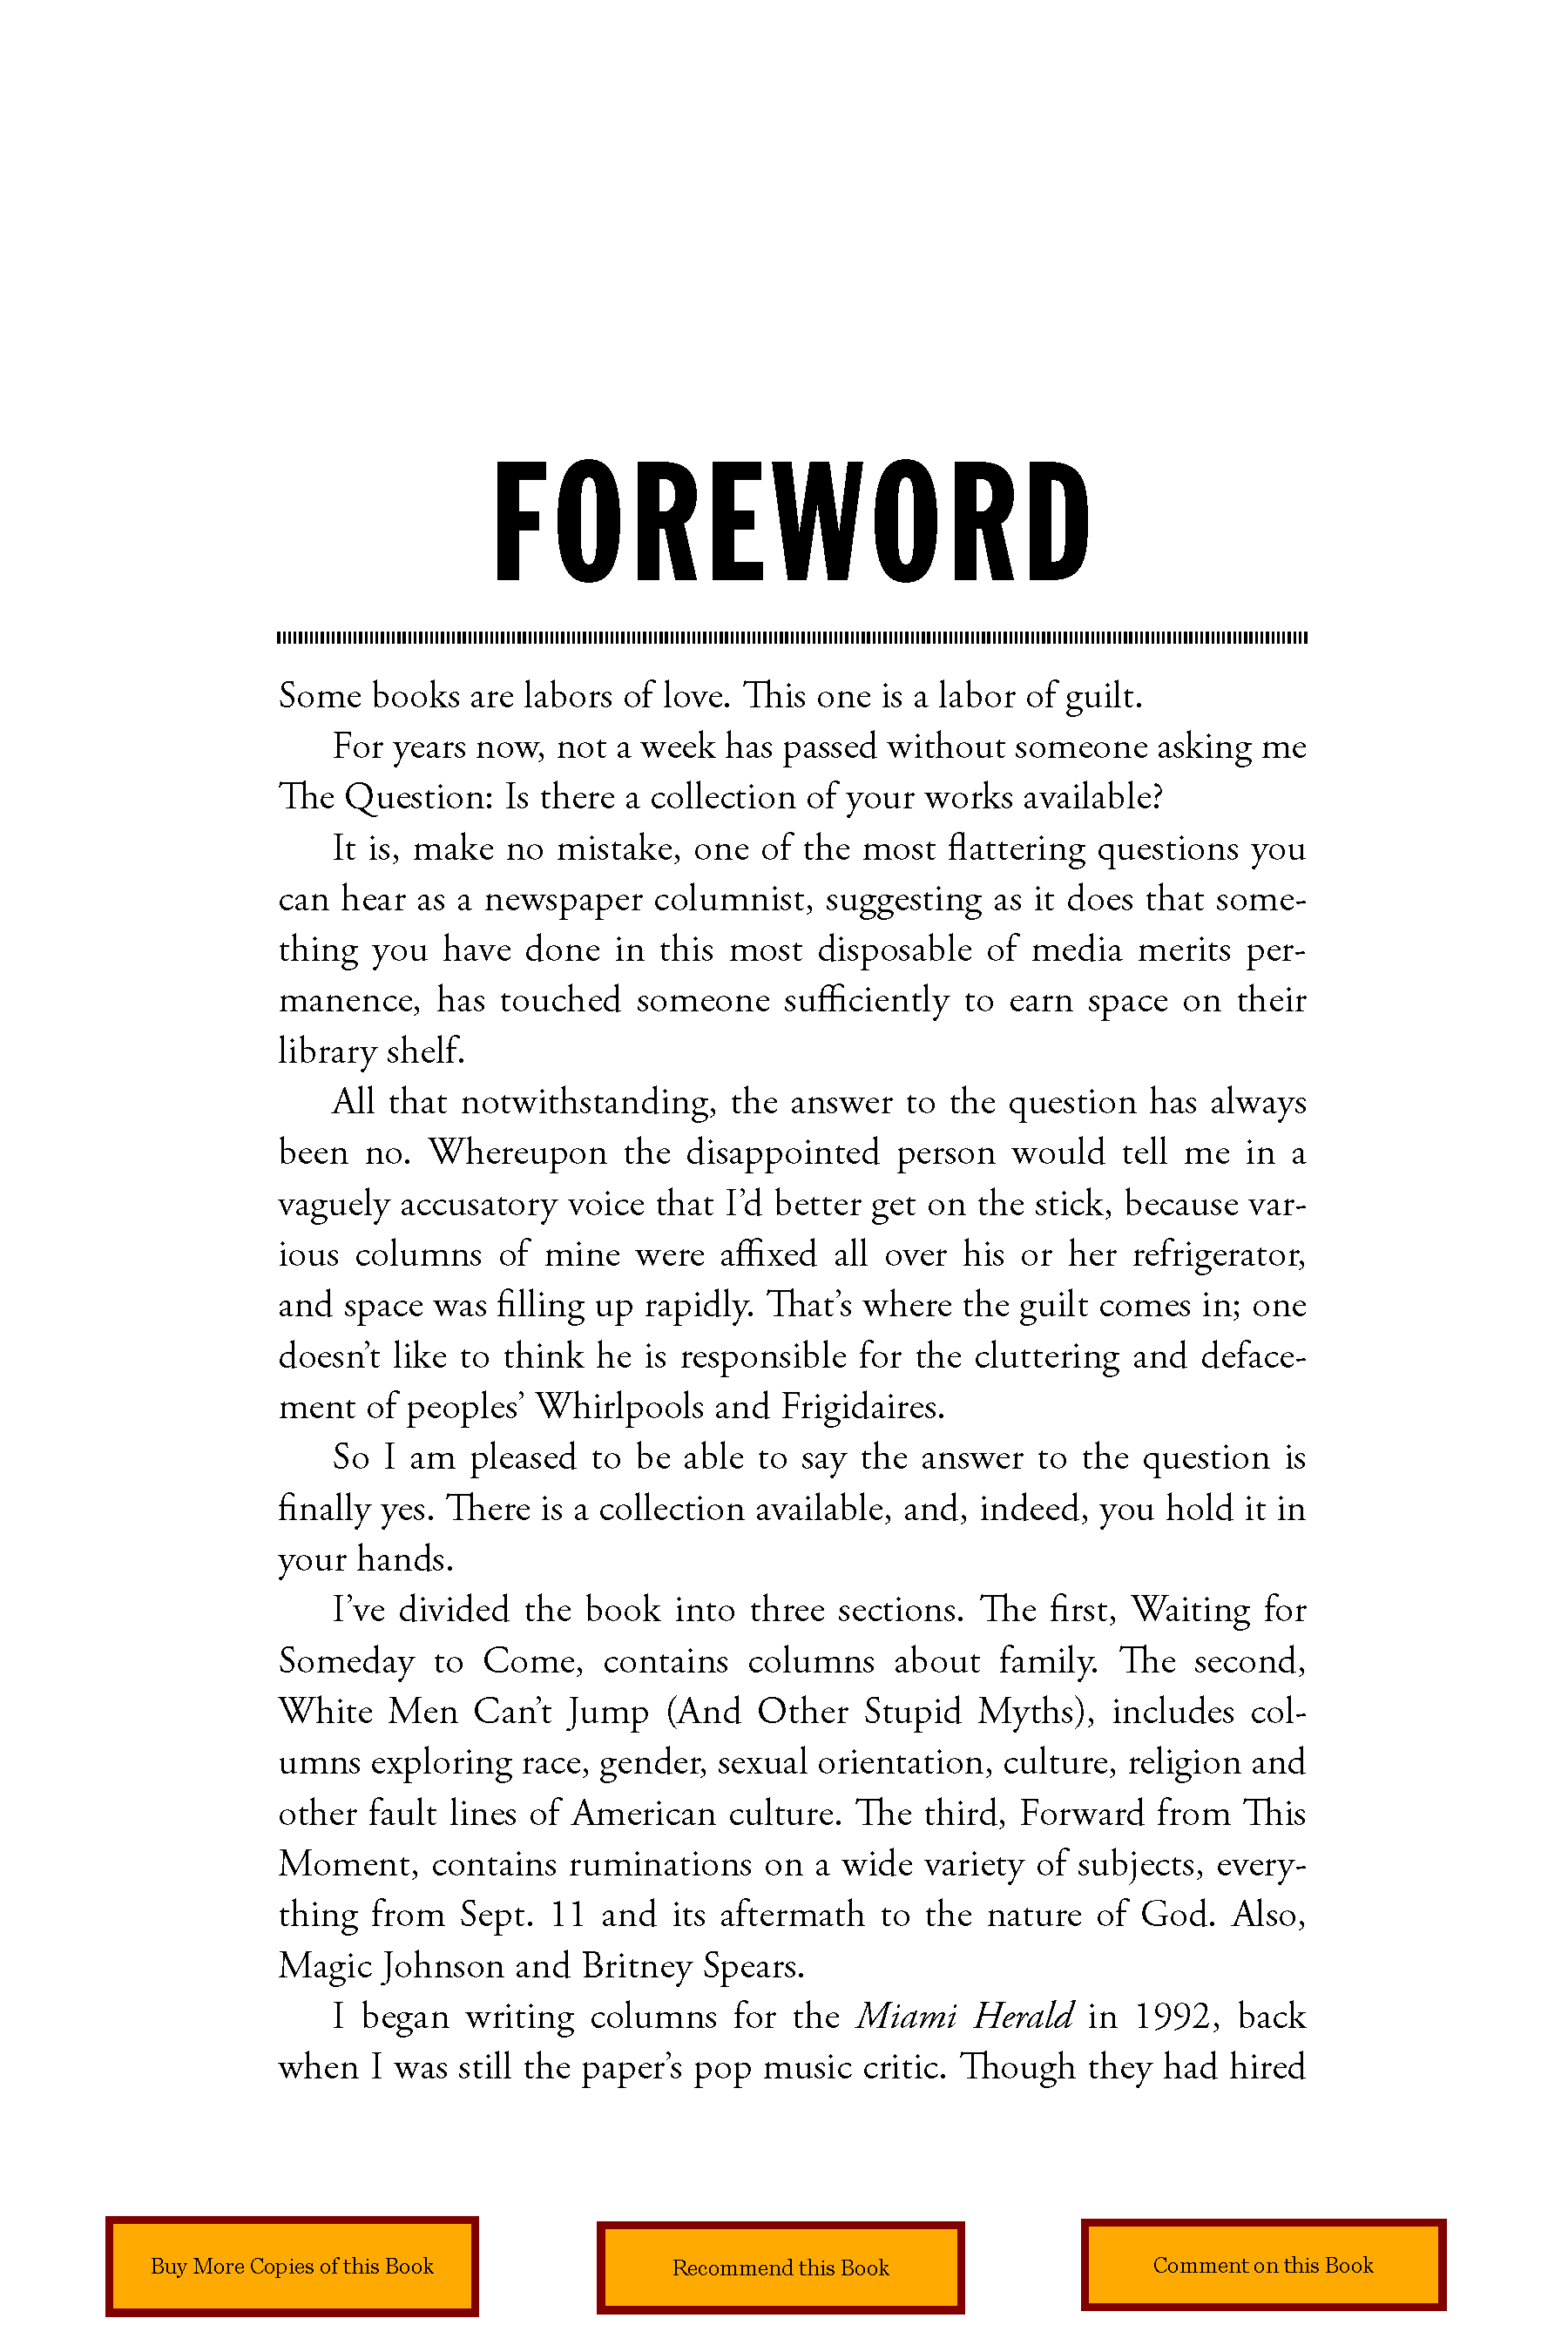 Forward from this Moment_Page_08.png